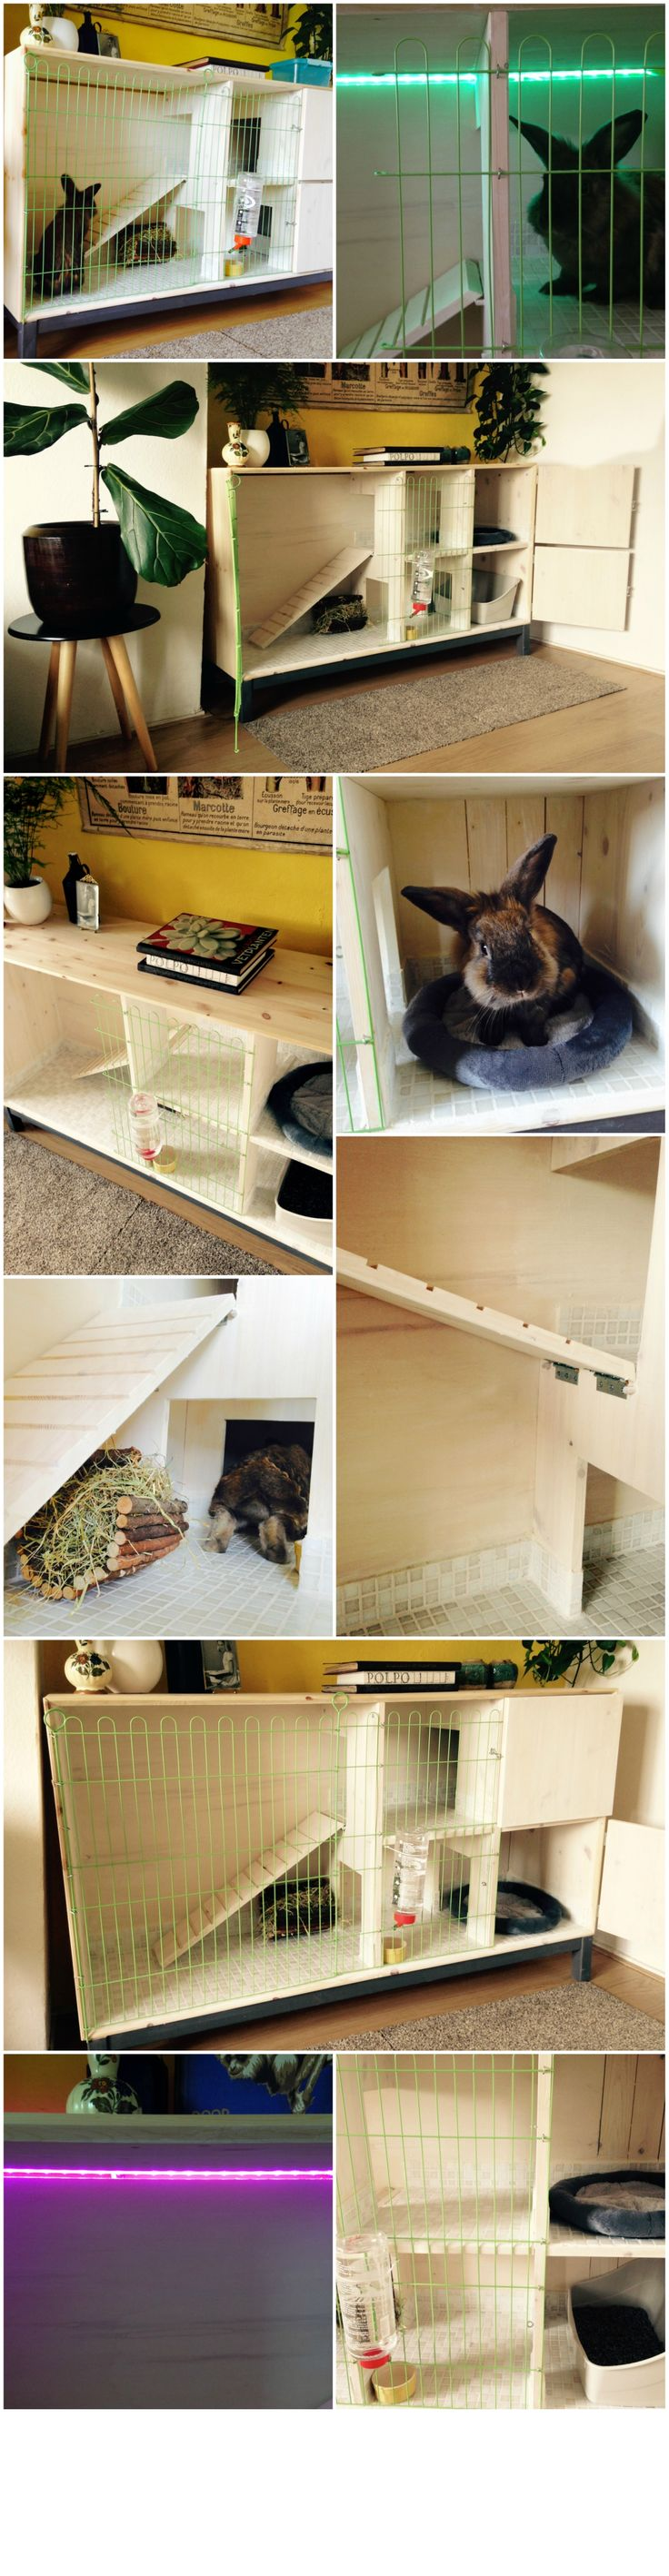 "This is a DIY/ IKEA hack indoor rabbit hutch I made for my rabbit Rein. I used the ""NÖRNAS sidebord basic unit"" from IKEA and ofcourse an IKEA LED-lighting strip to spice things up..."